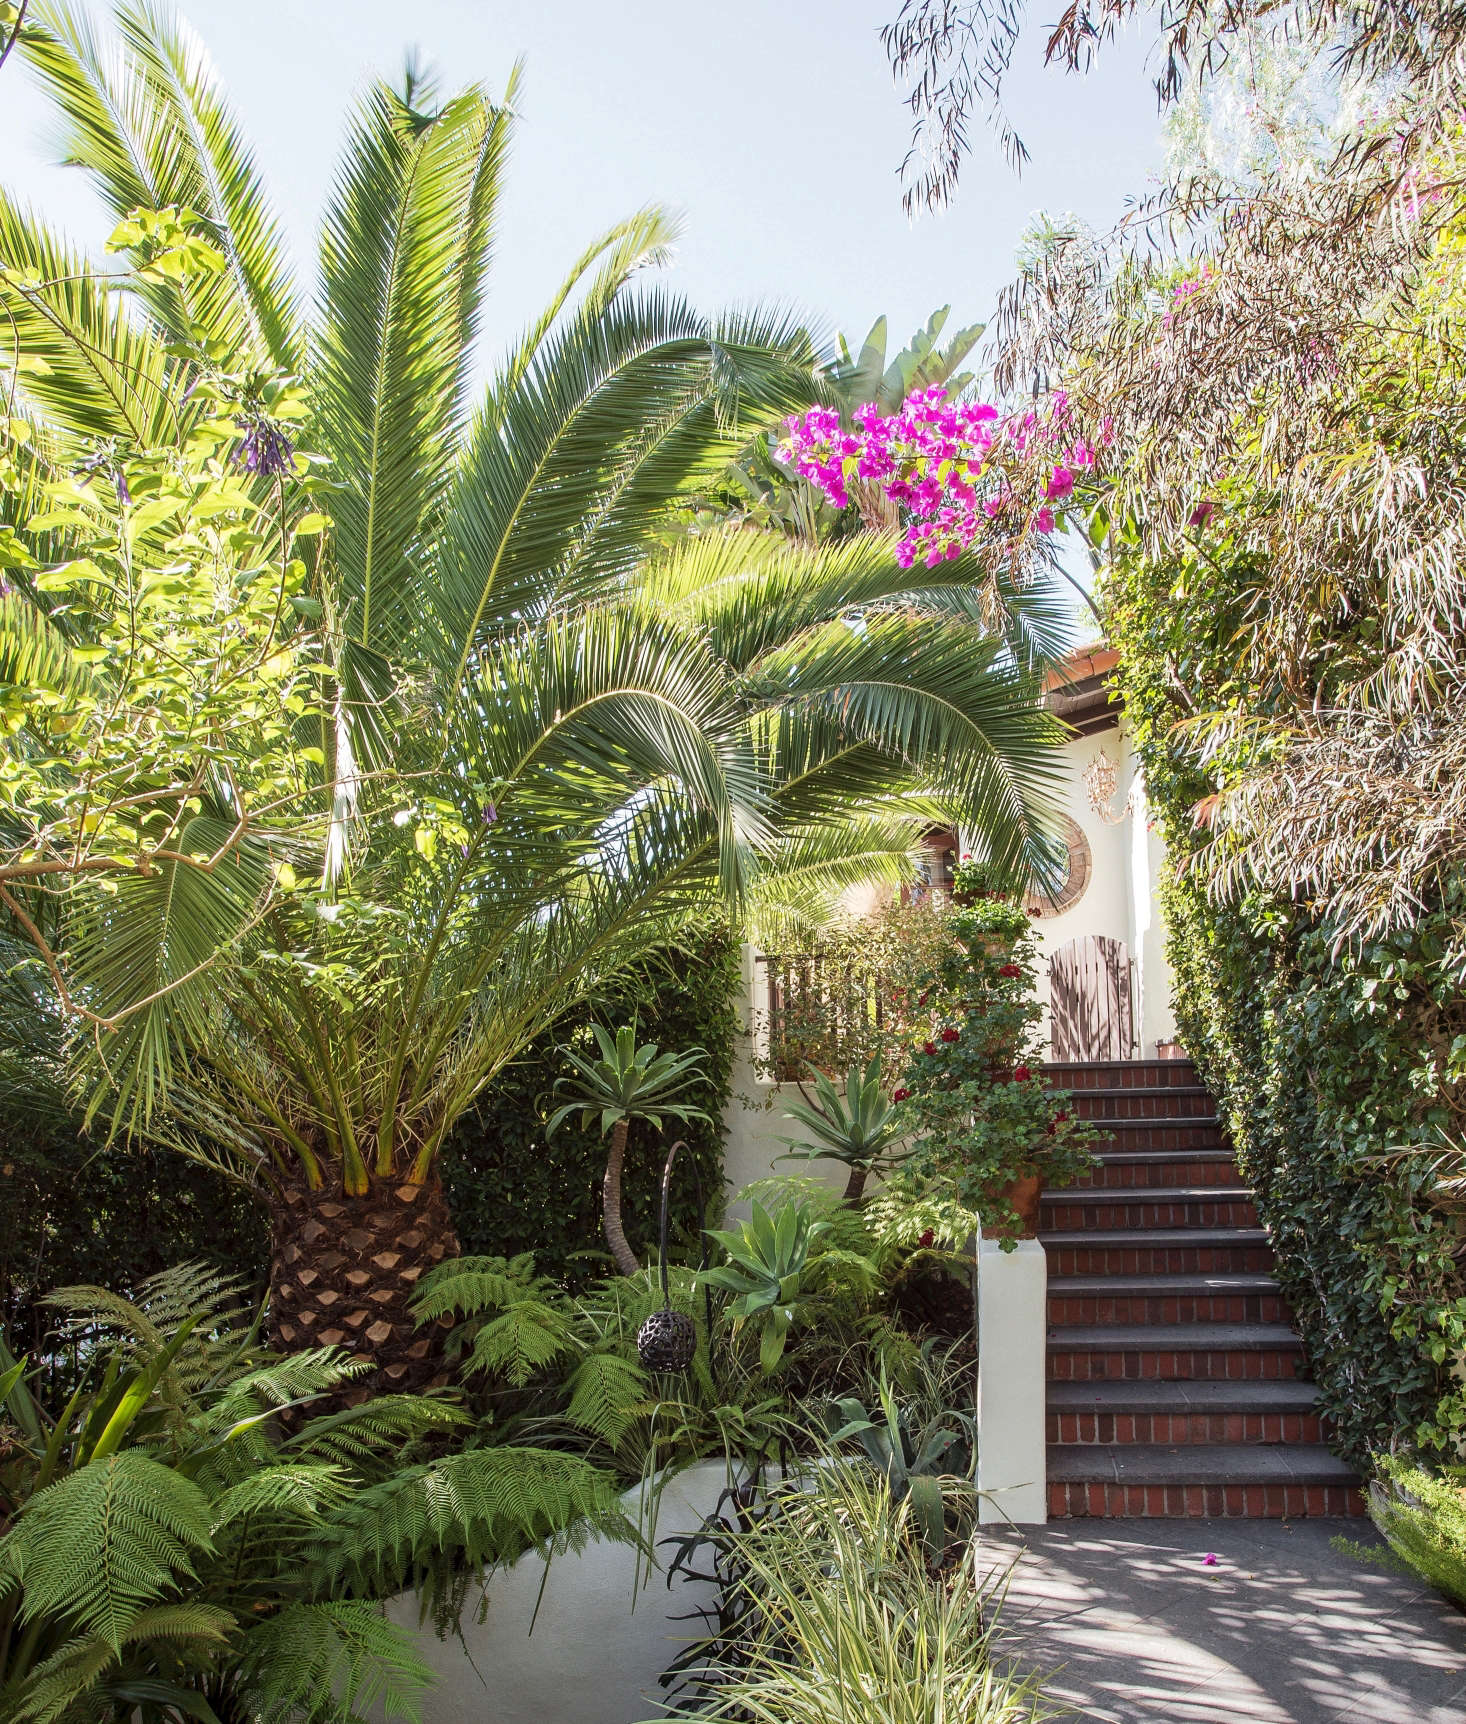 See More Of This Palm Tree And The Los Angeles Garden It Graces In Our Book